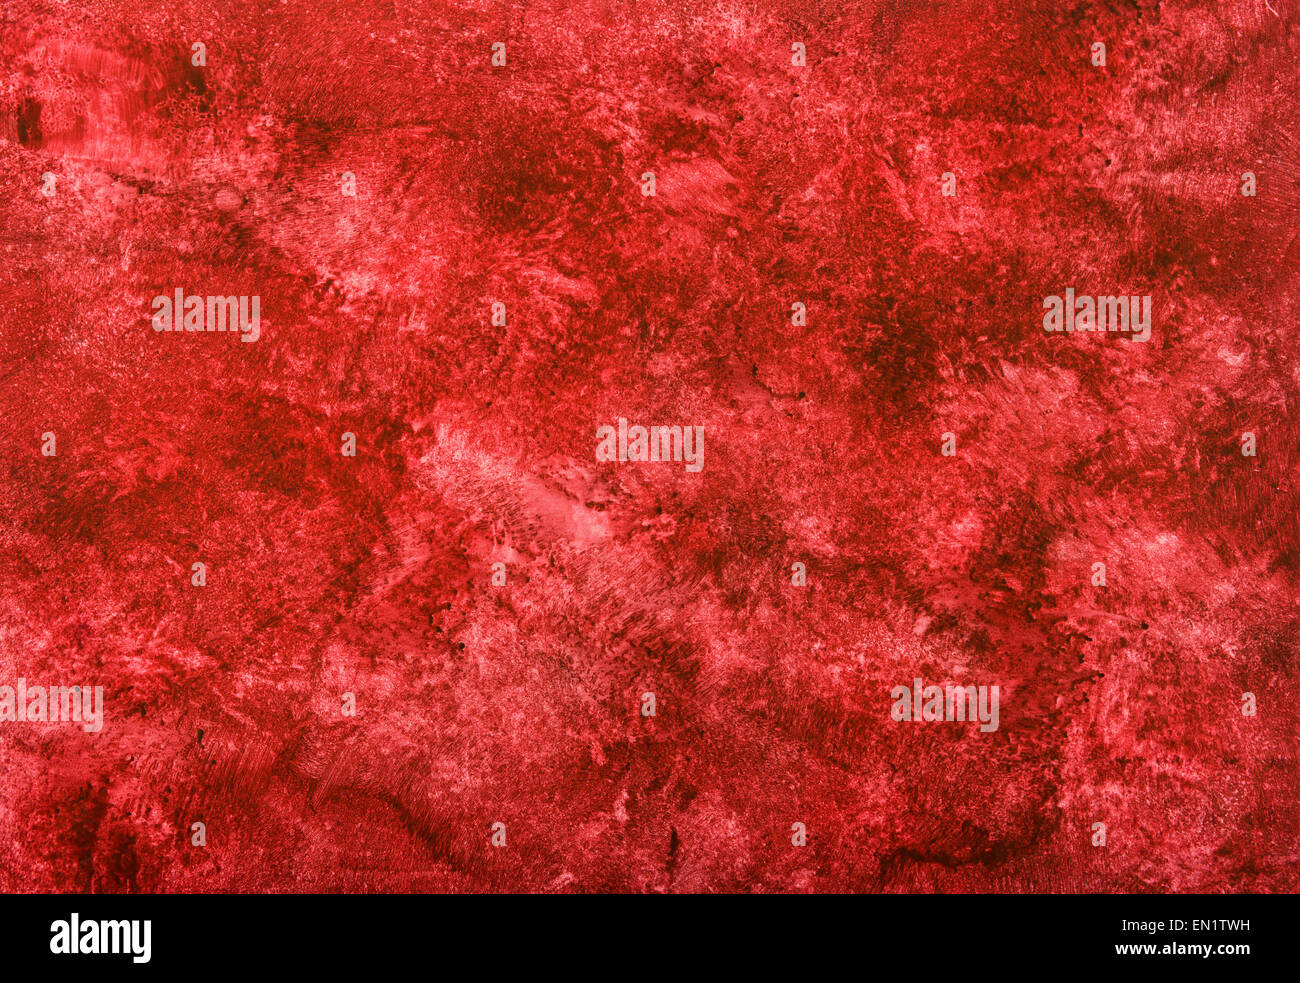 vibrant red marbled paper pattern with blended mottled shades of